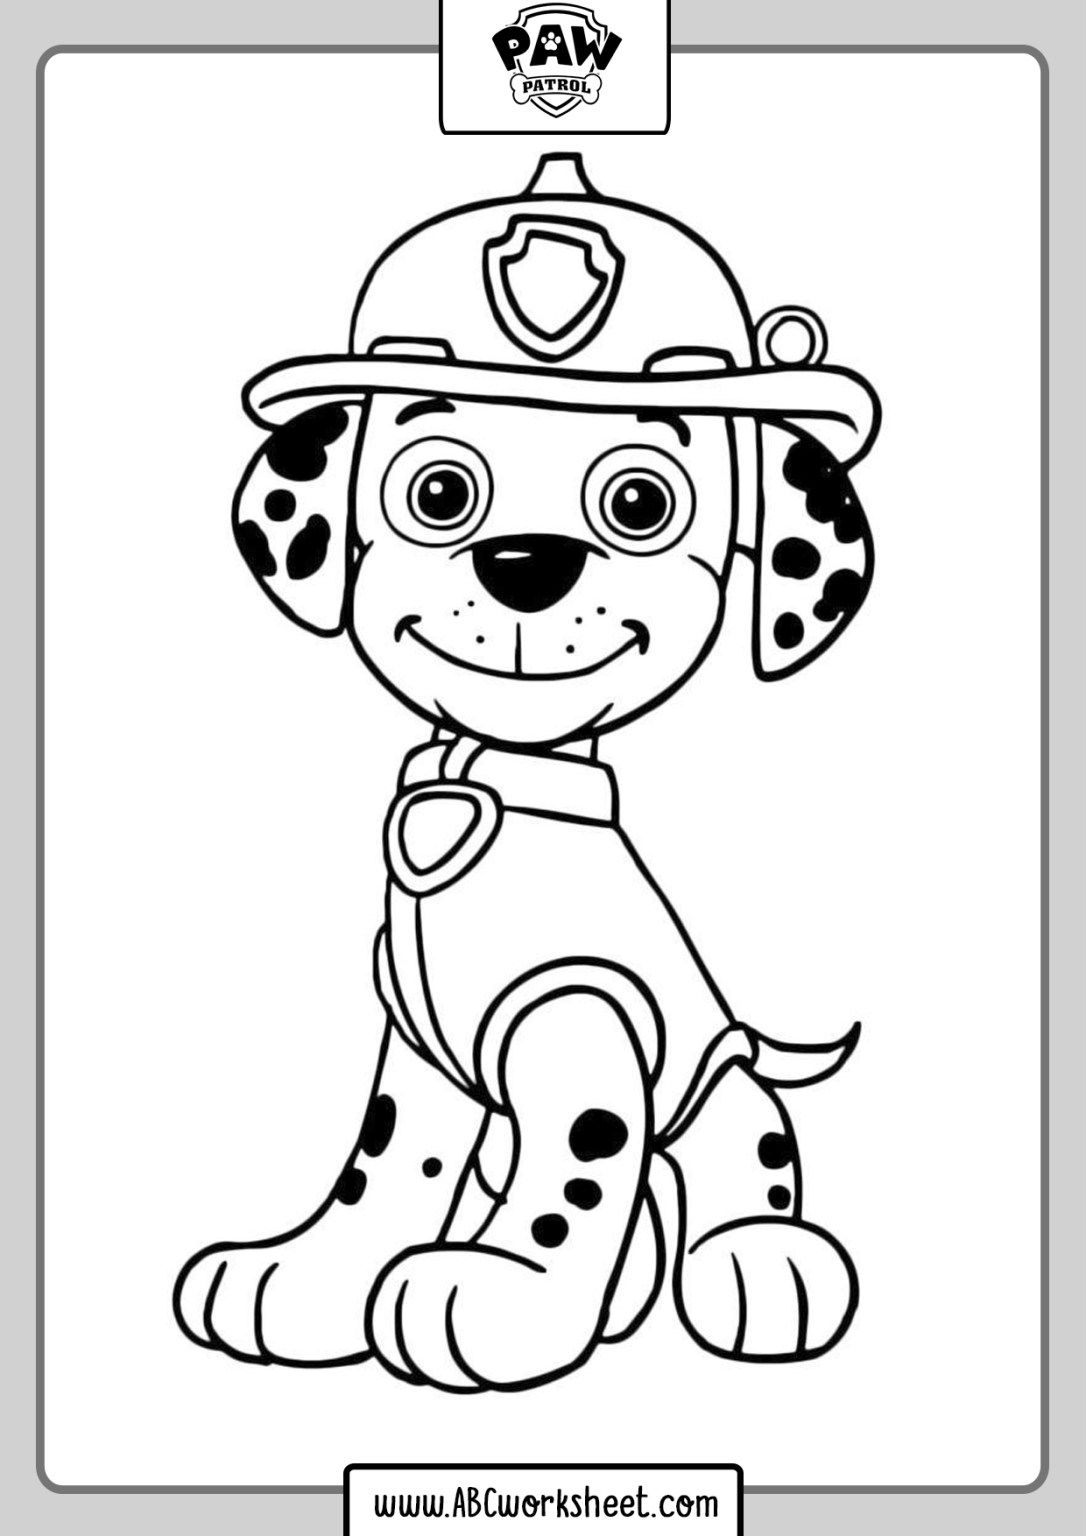 pics of paw patrol transparent paw patrol png images colouring pages paw of patrol pics paw